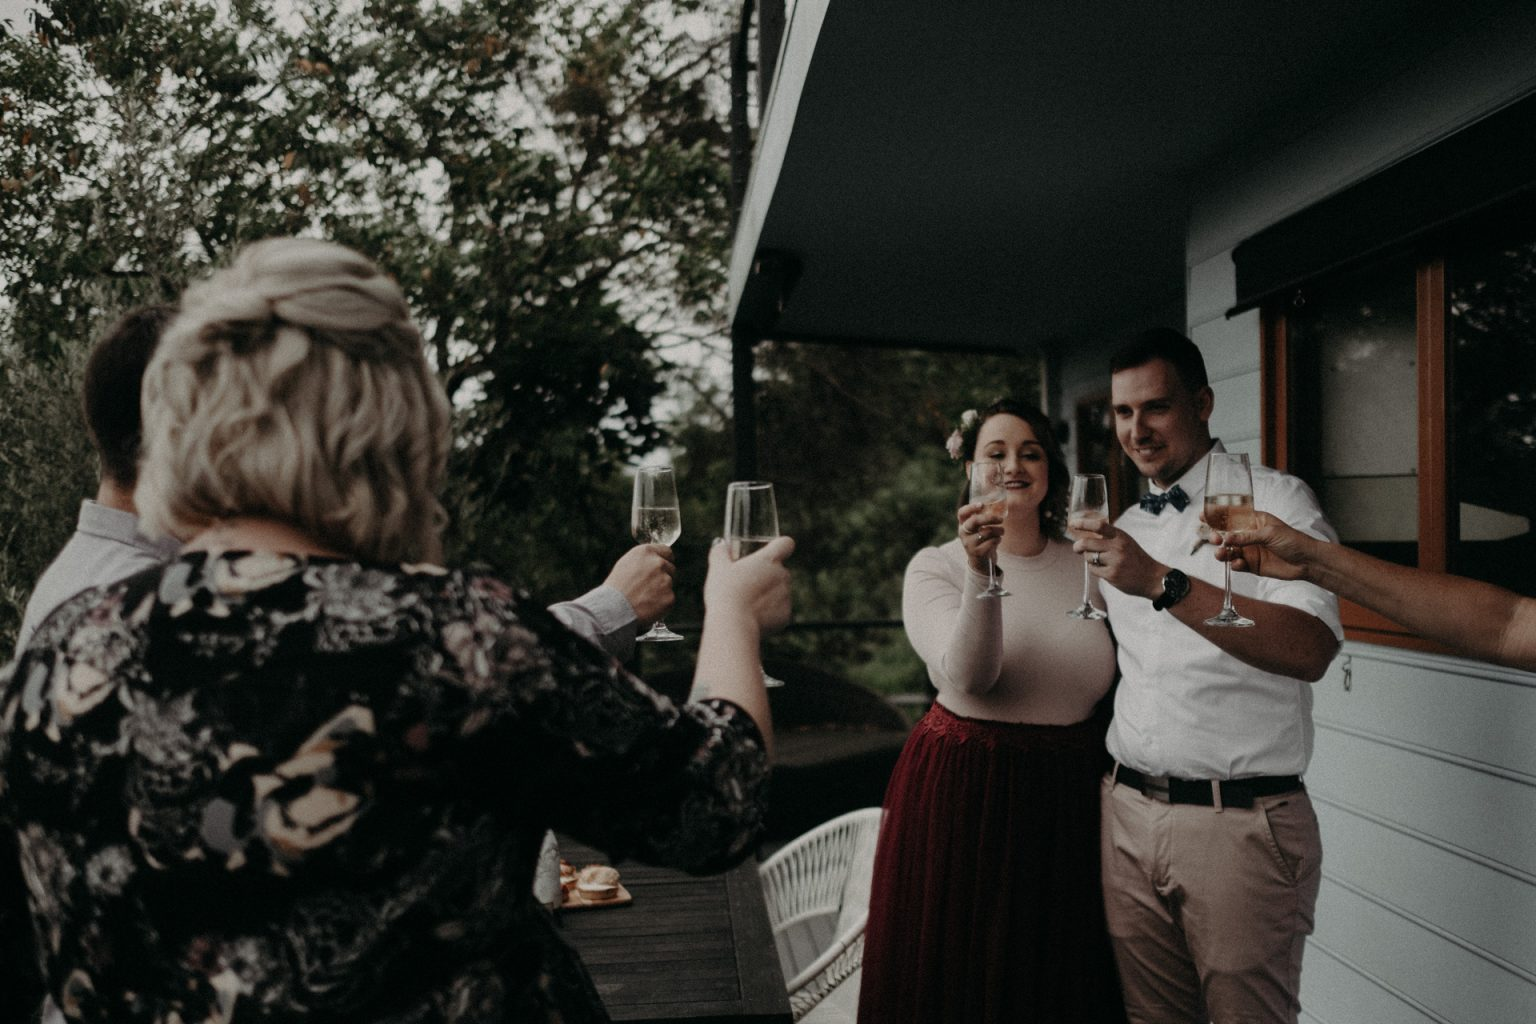 bridal party toasting with wine